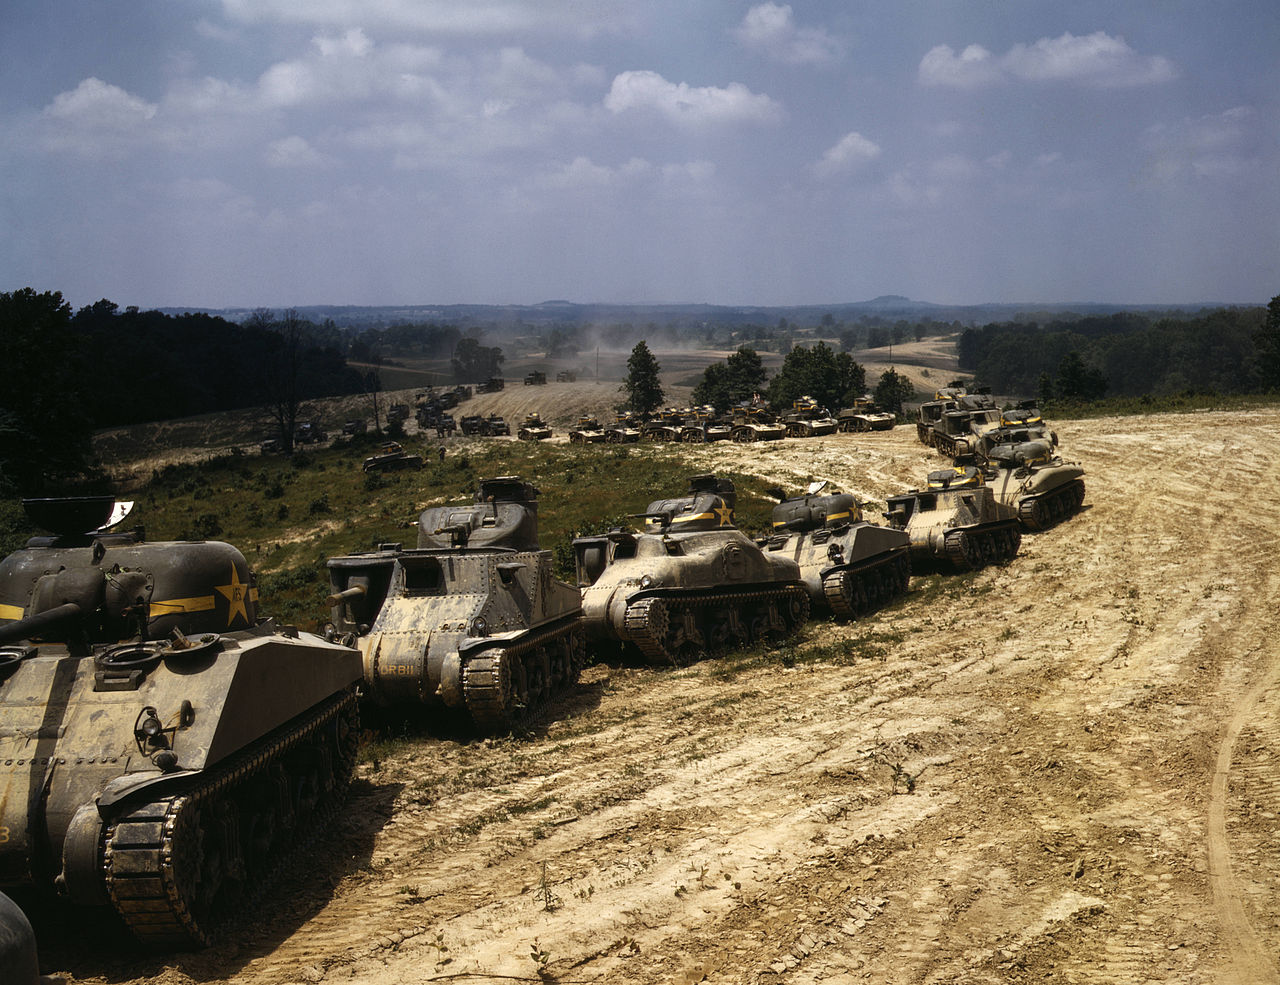 Parade of M-4 (General Sherman) and M-3 (General Grant) tanks in training maneuvers, Ft. Knox, Ky,1942